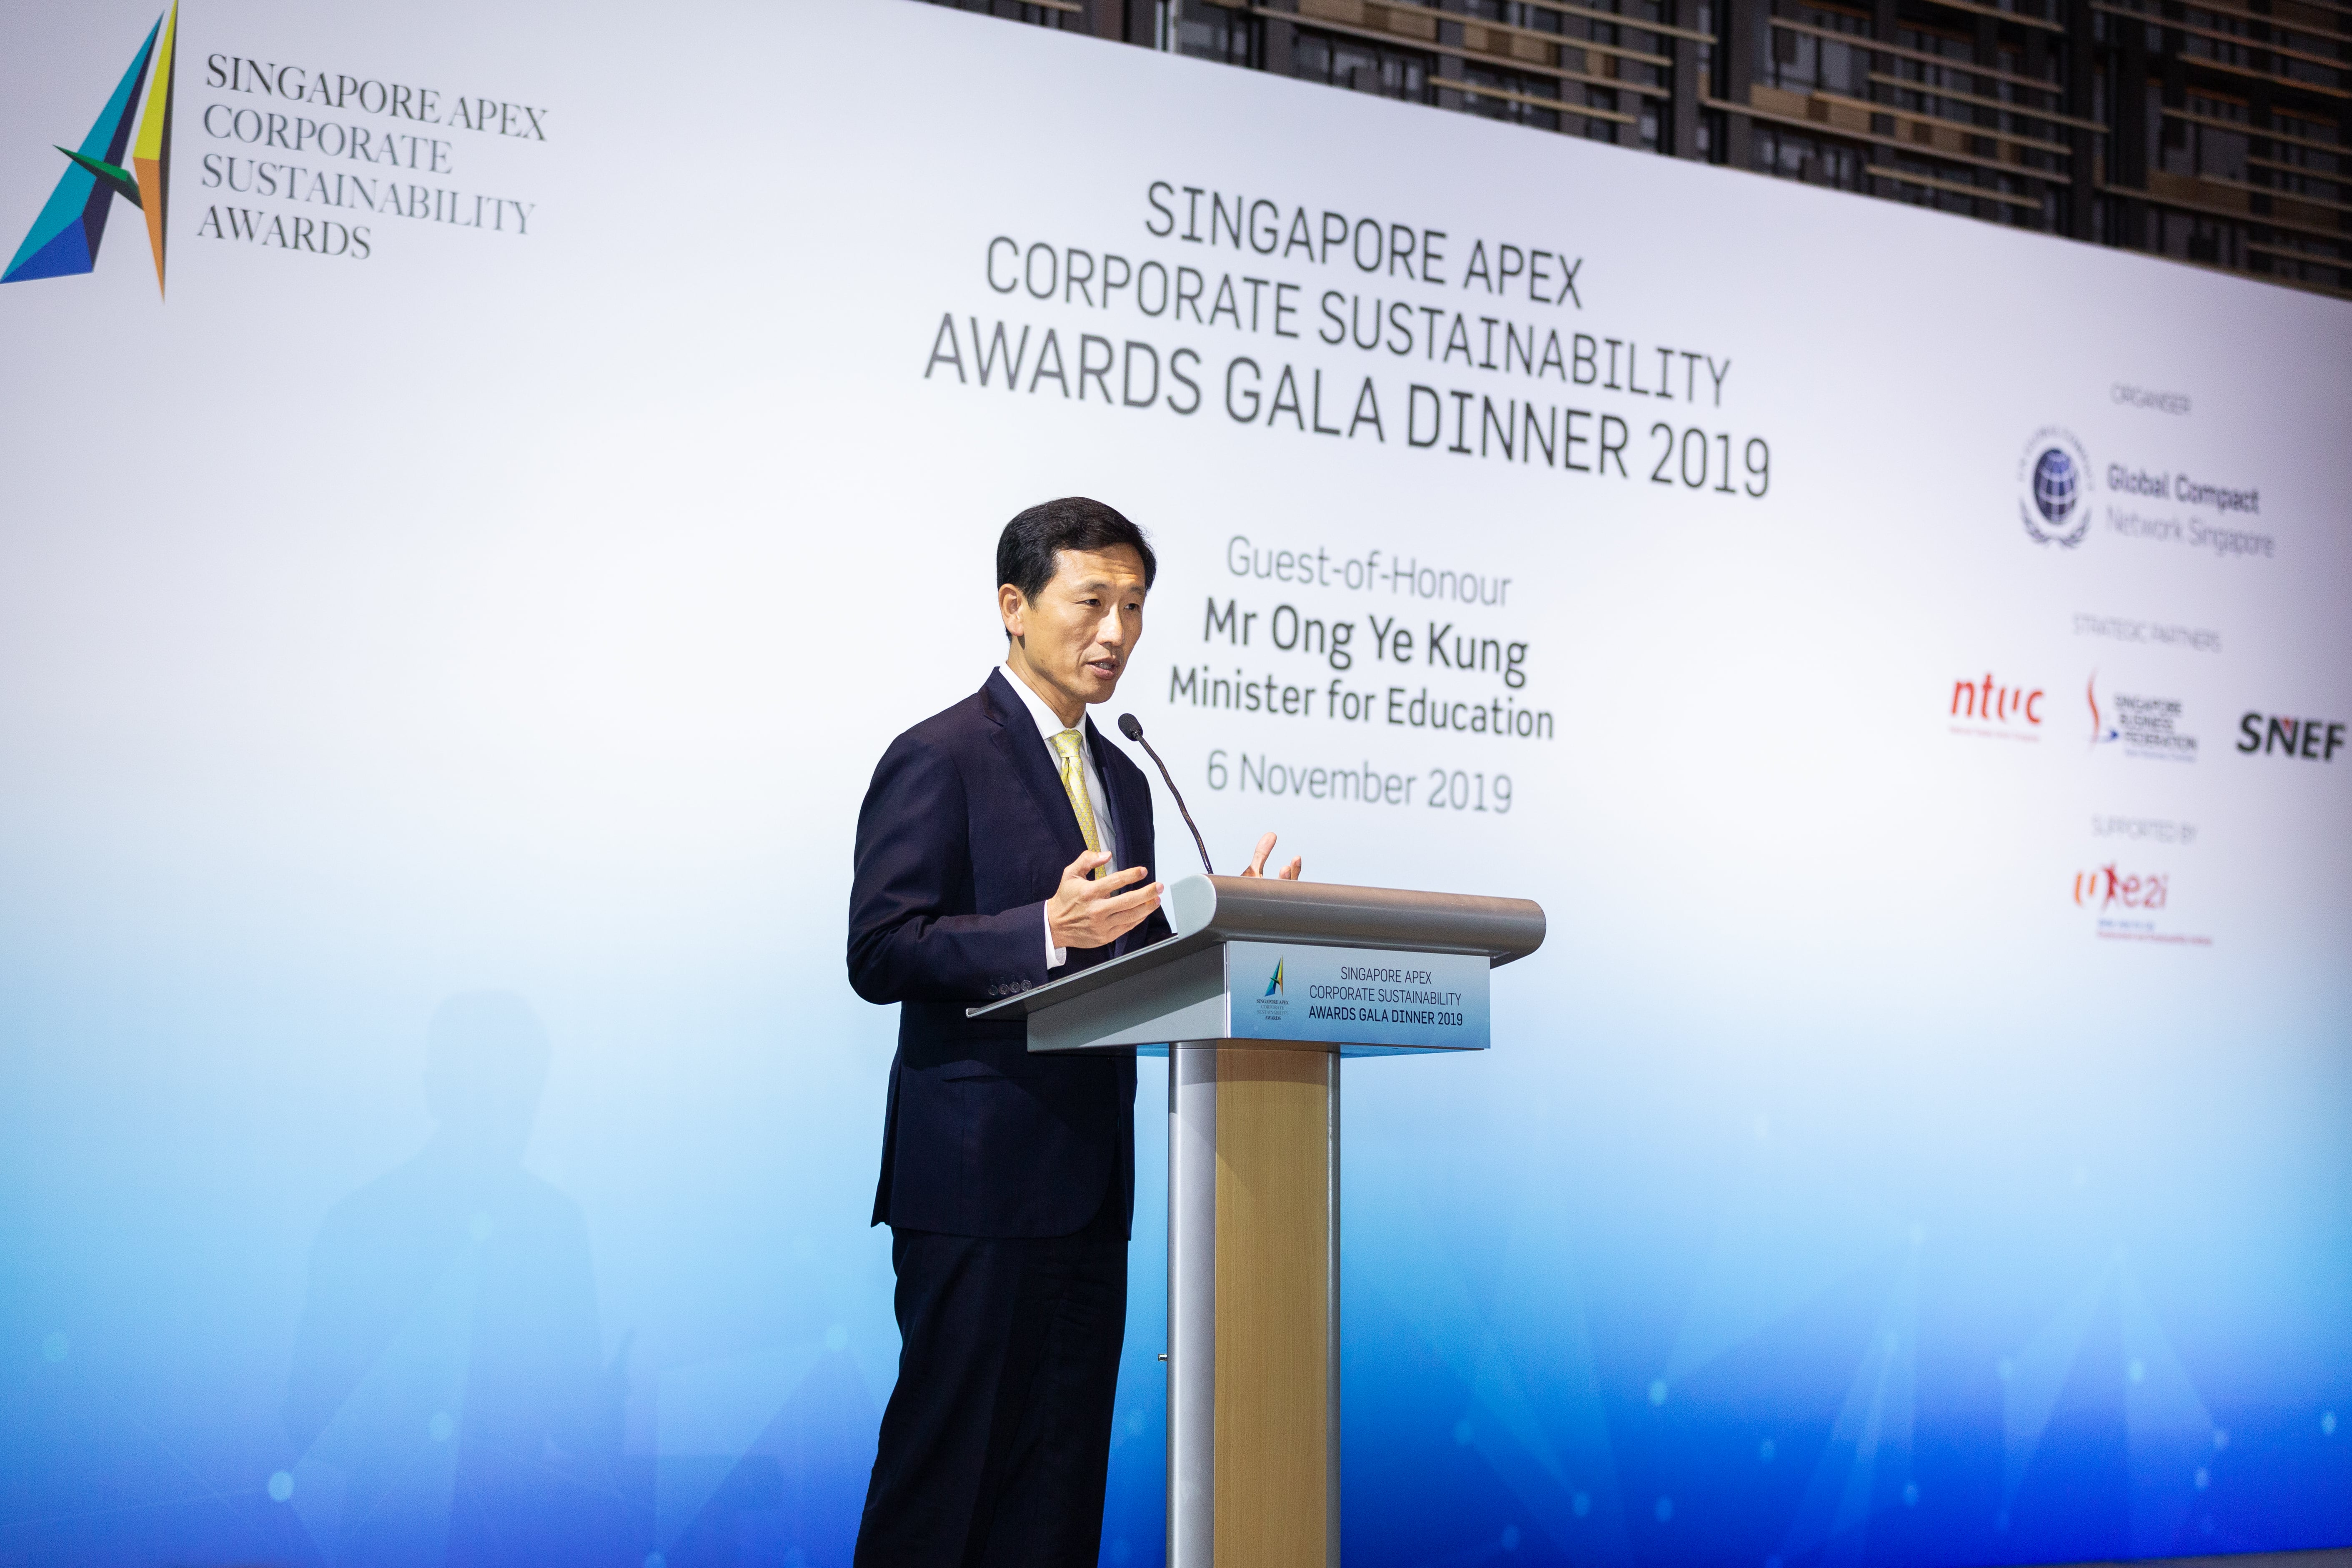 Minister Ong Ye Kung